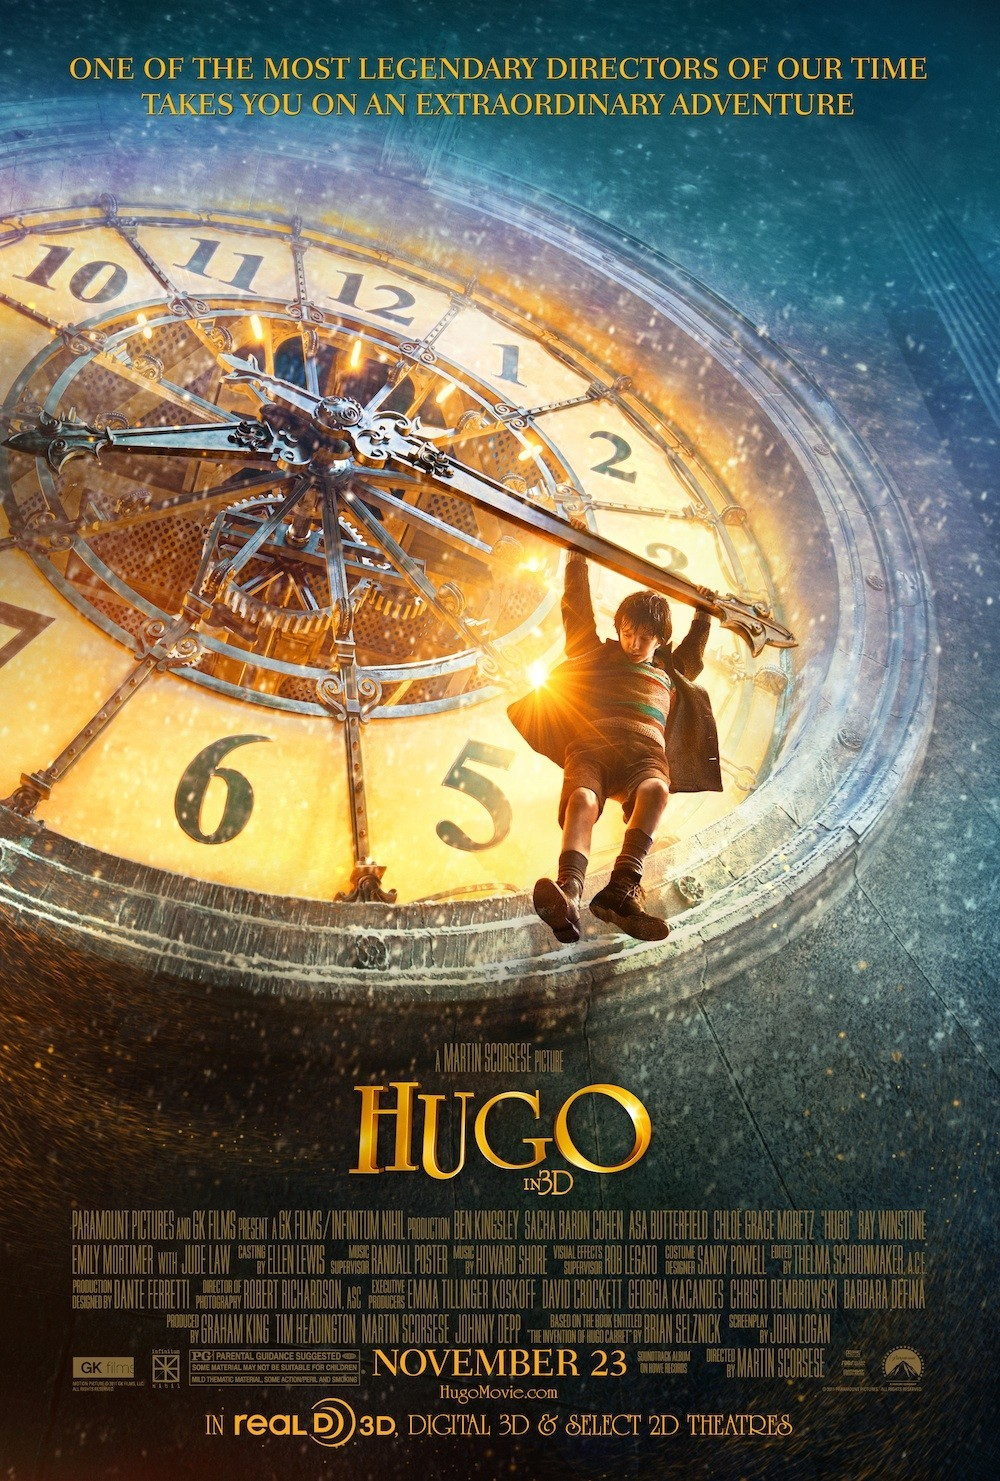 A Christmas Carol Poster.Another New Poster For Martin Scorsese S Hugo Looks Like A